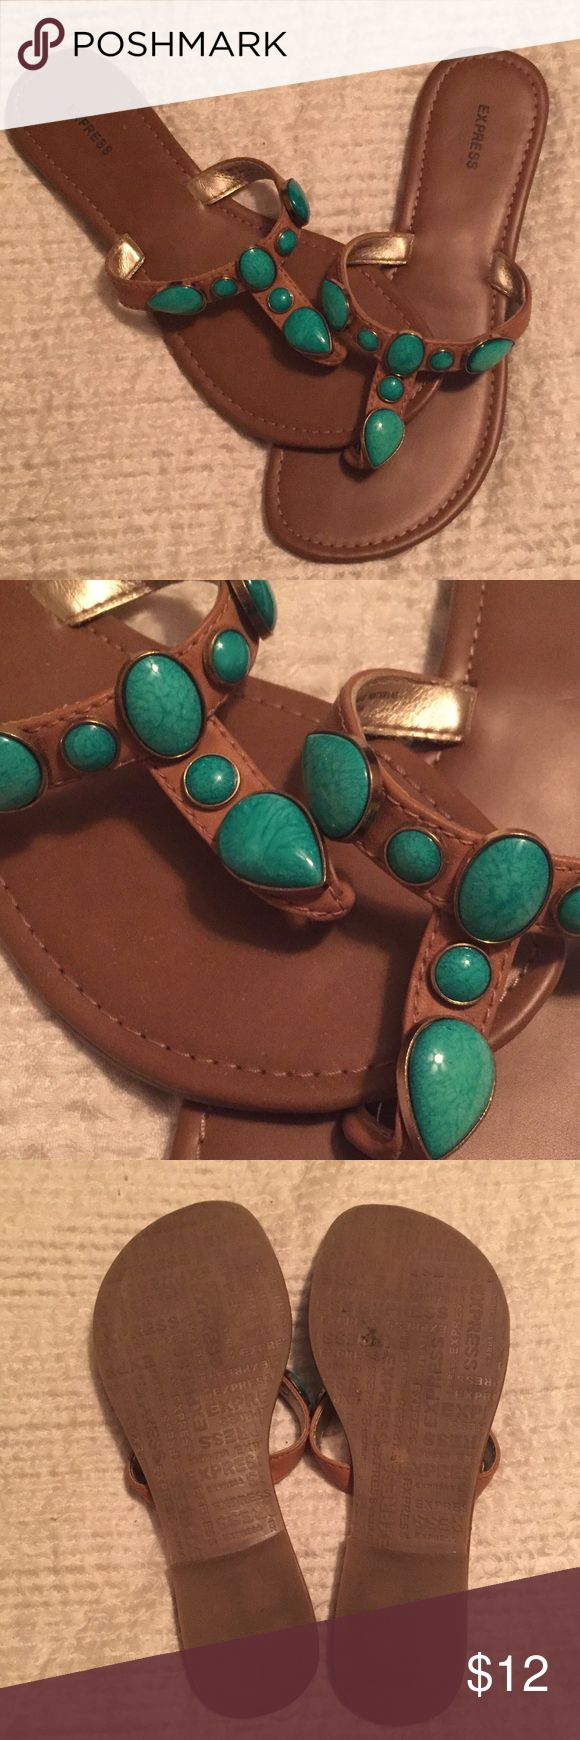 Express turquoise sandals  Adorable turquoise stone sandals, gently worn. In very good condition. Perfect for spring and the beach. Express Shoes Sandals